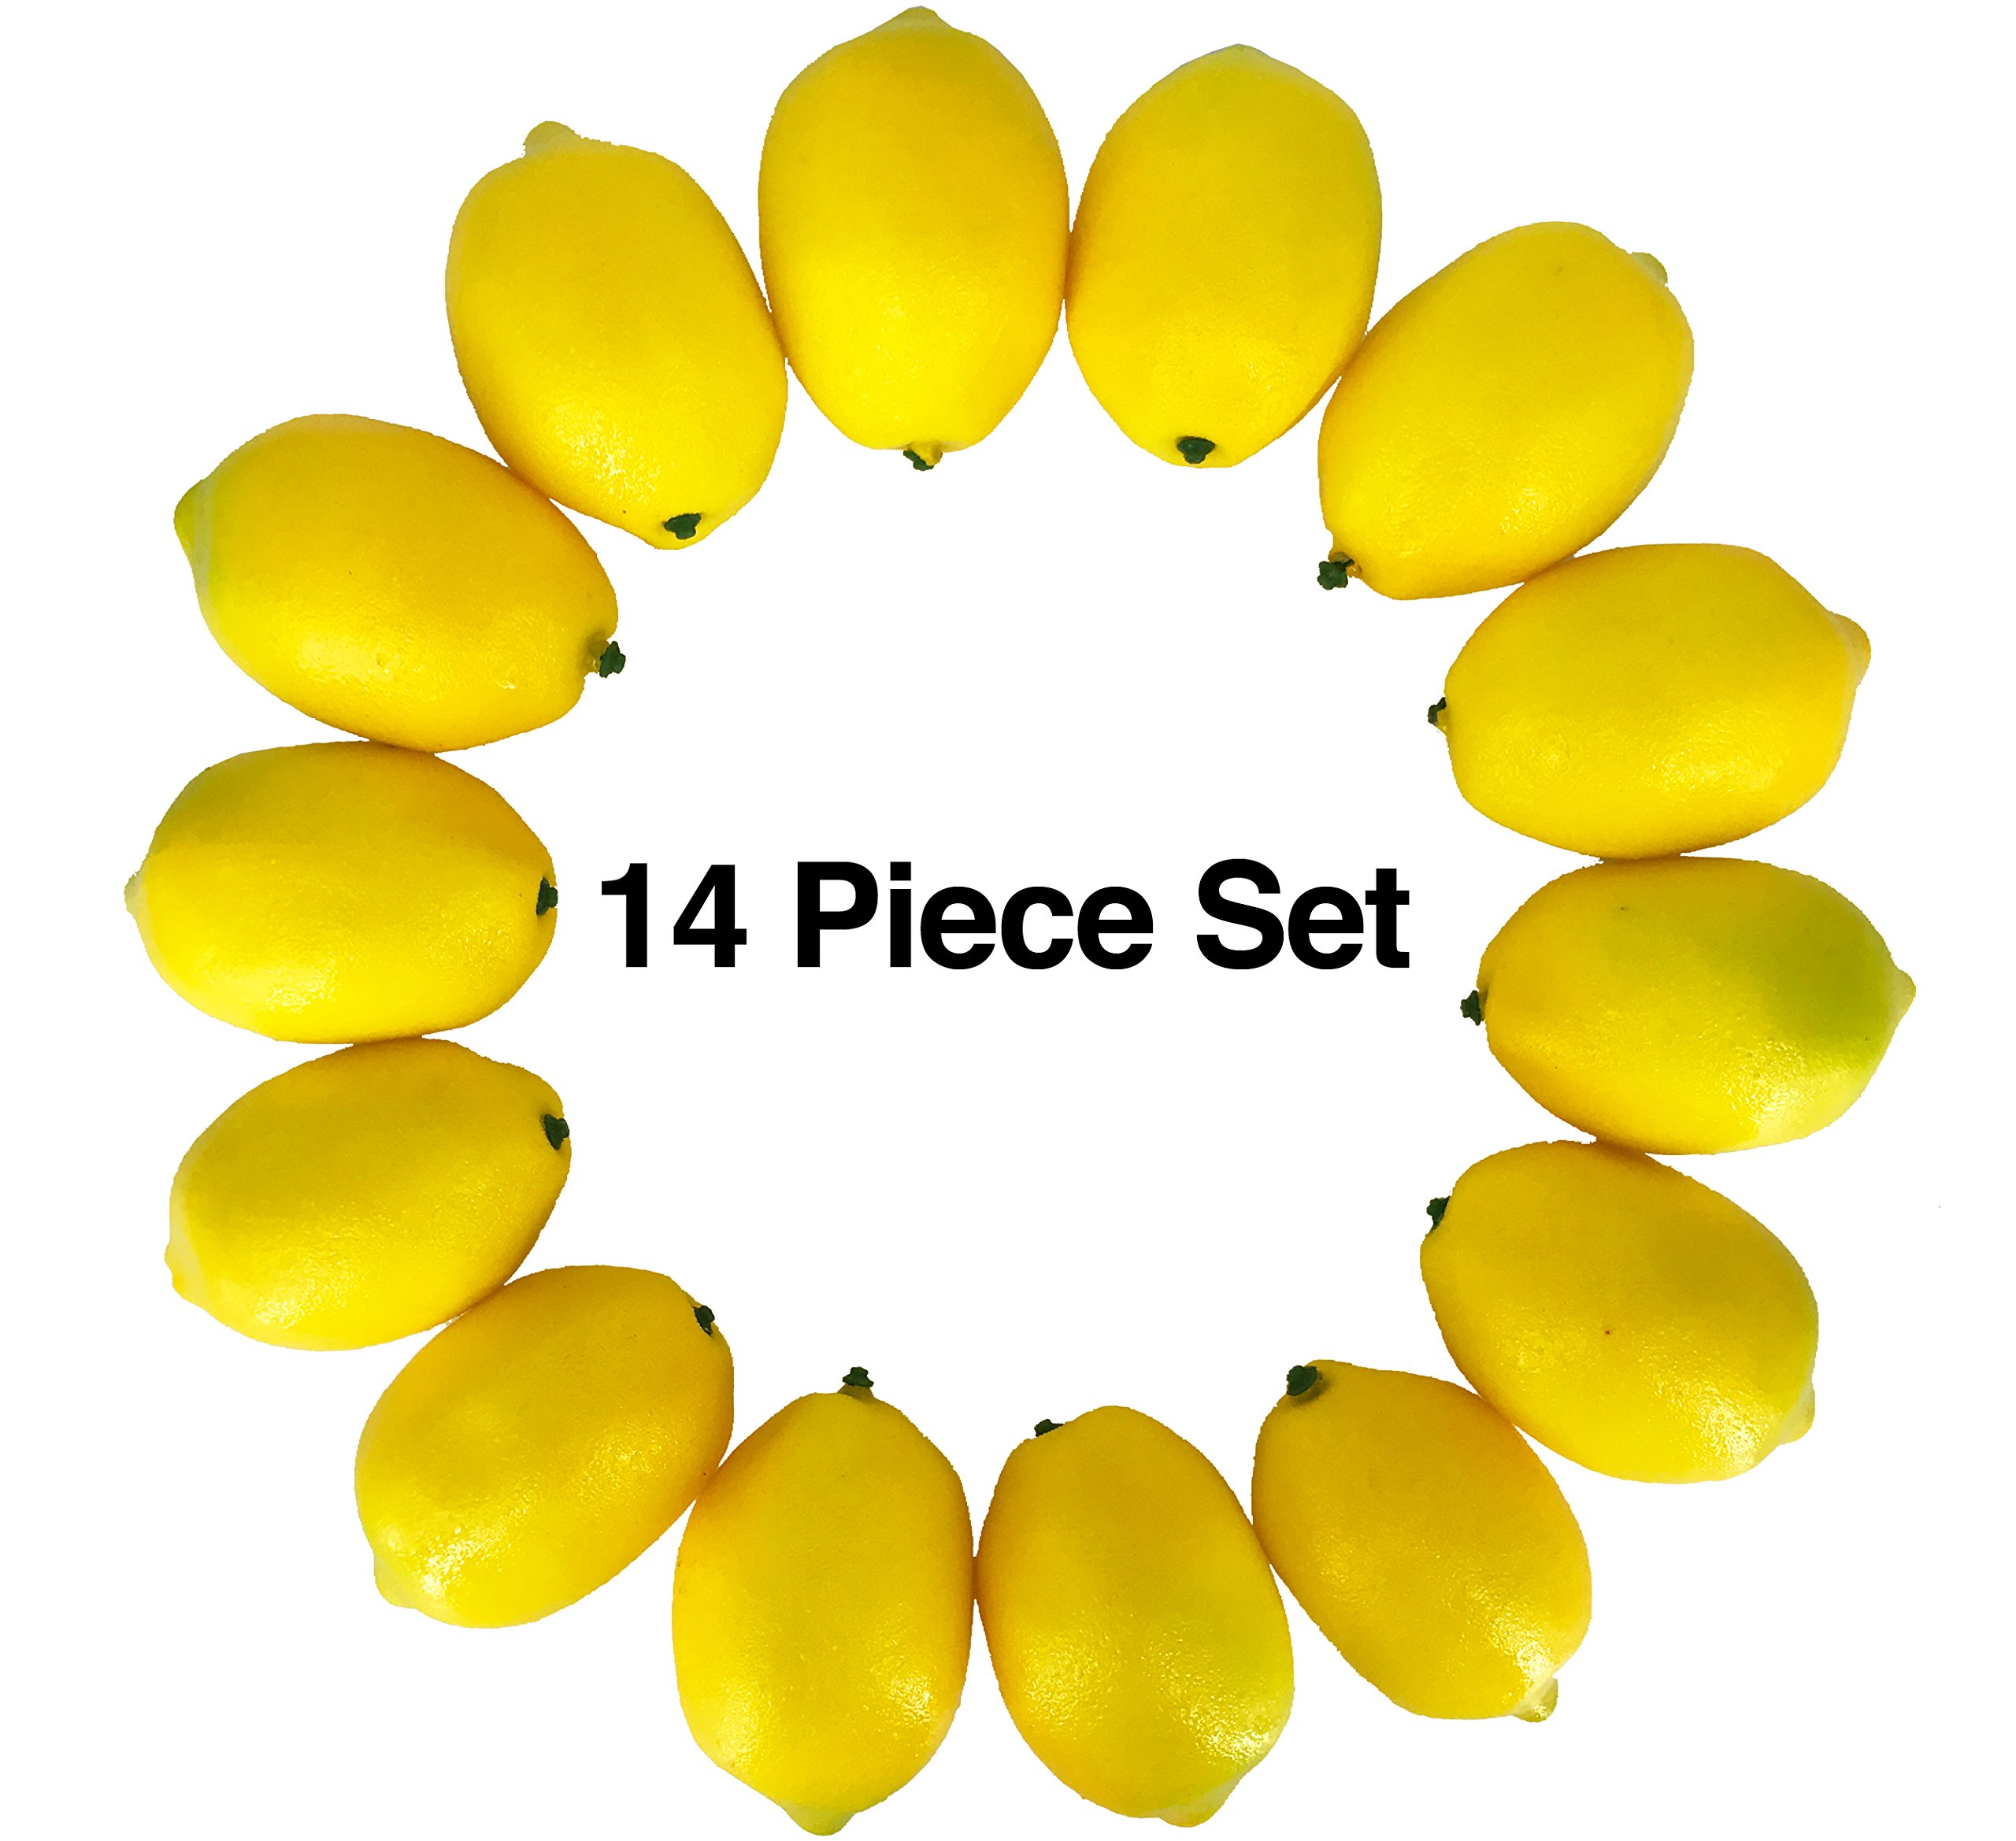 Realistic Fake Lemons set – 14pcs– Real Looking Fake Fruits for Decoration – Fake Lemons for Decoration, Lifelike Simulations, Home Staging, Fake Fruit Bowl, Kitchen Table Home Décor, Photography Prop